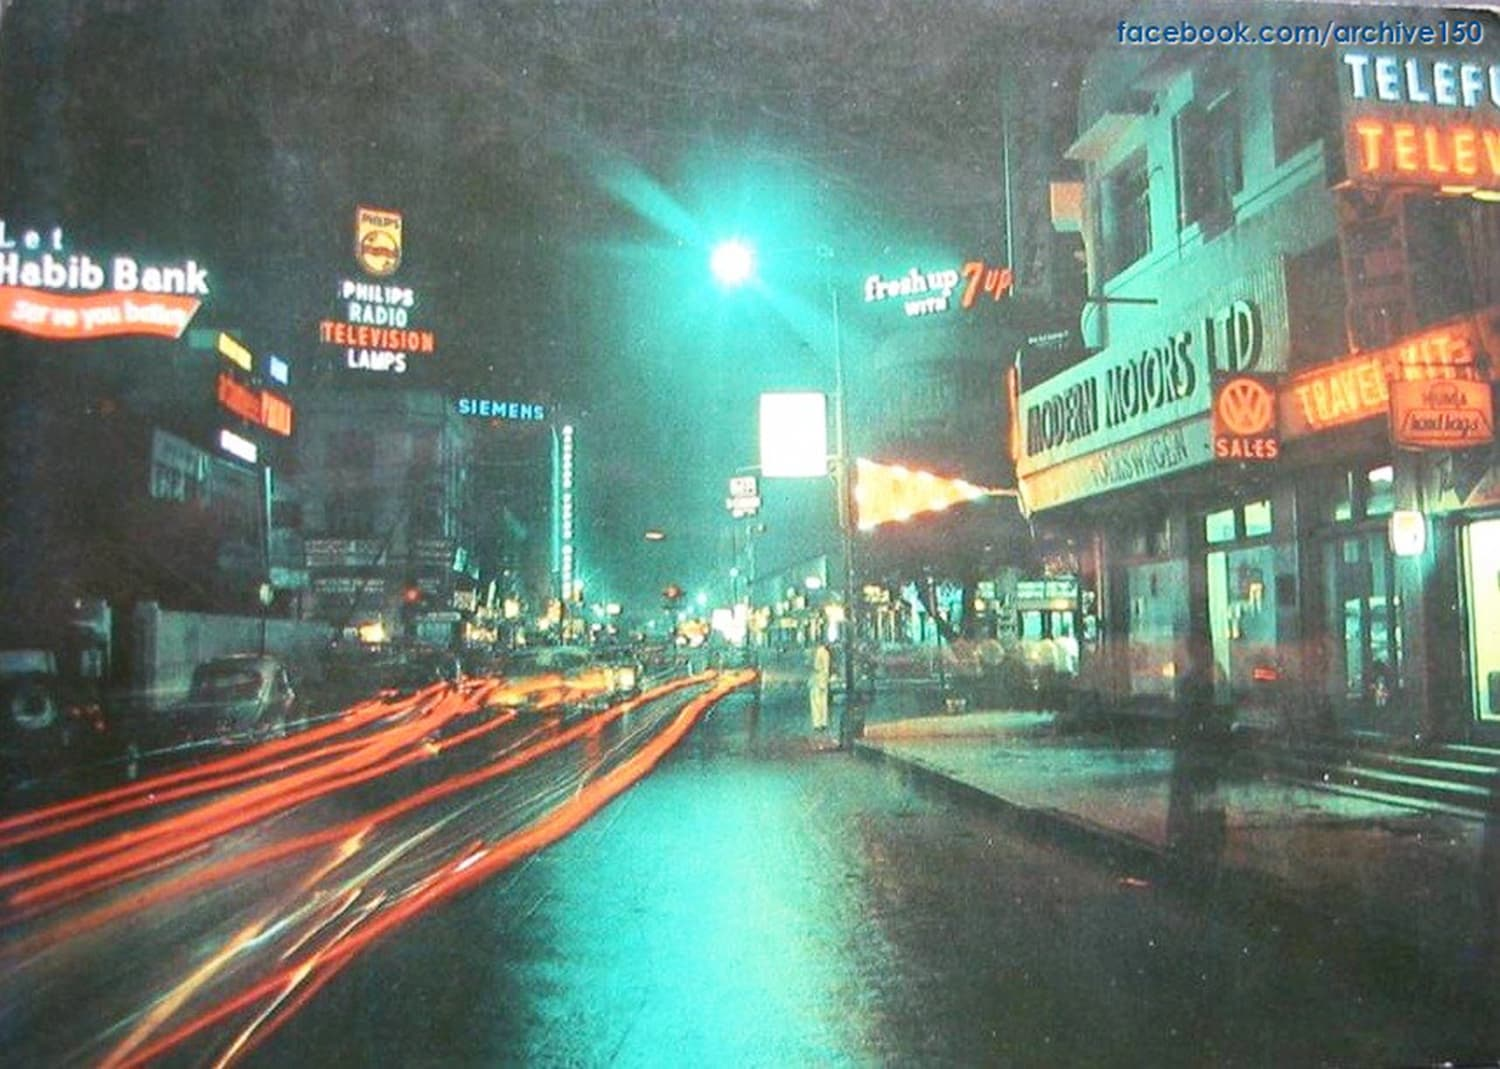 Karachi's busy Saddar area in 1974.